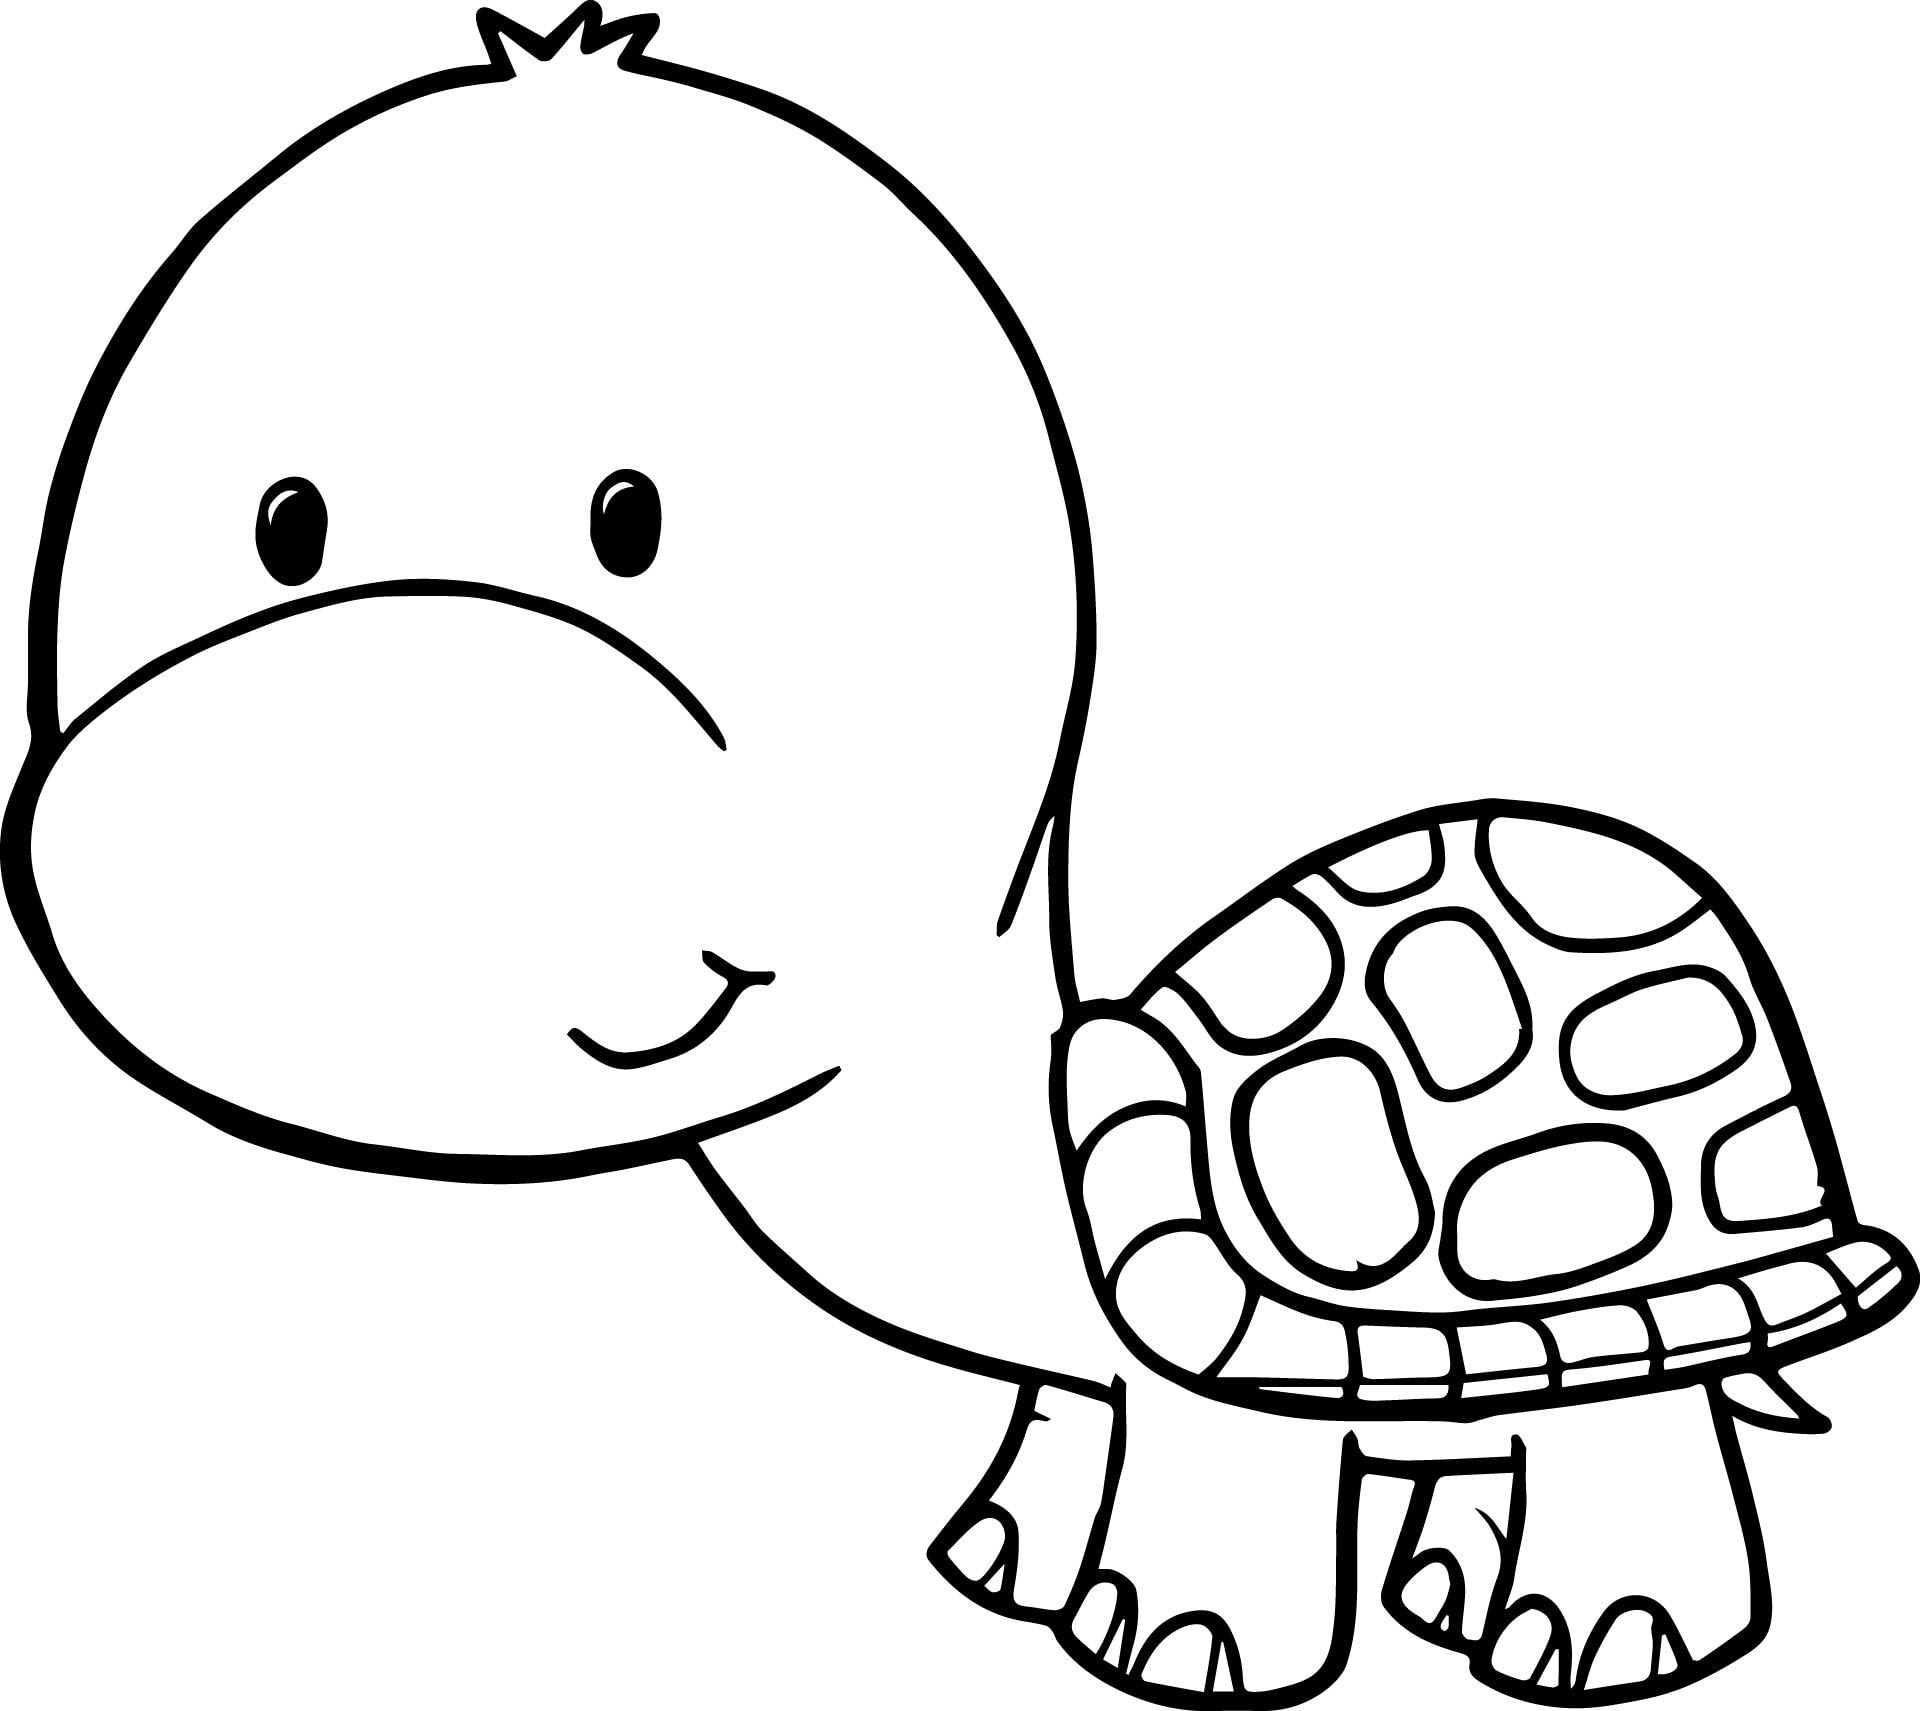 coloring pages turtle turtles to print turtles kids coloring pages turtle pages coloring 1 1